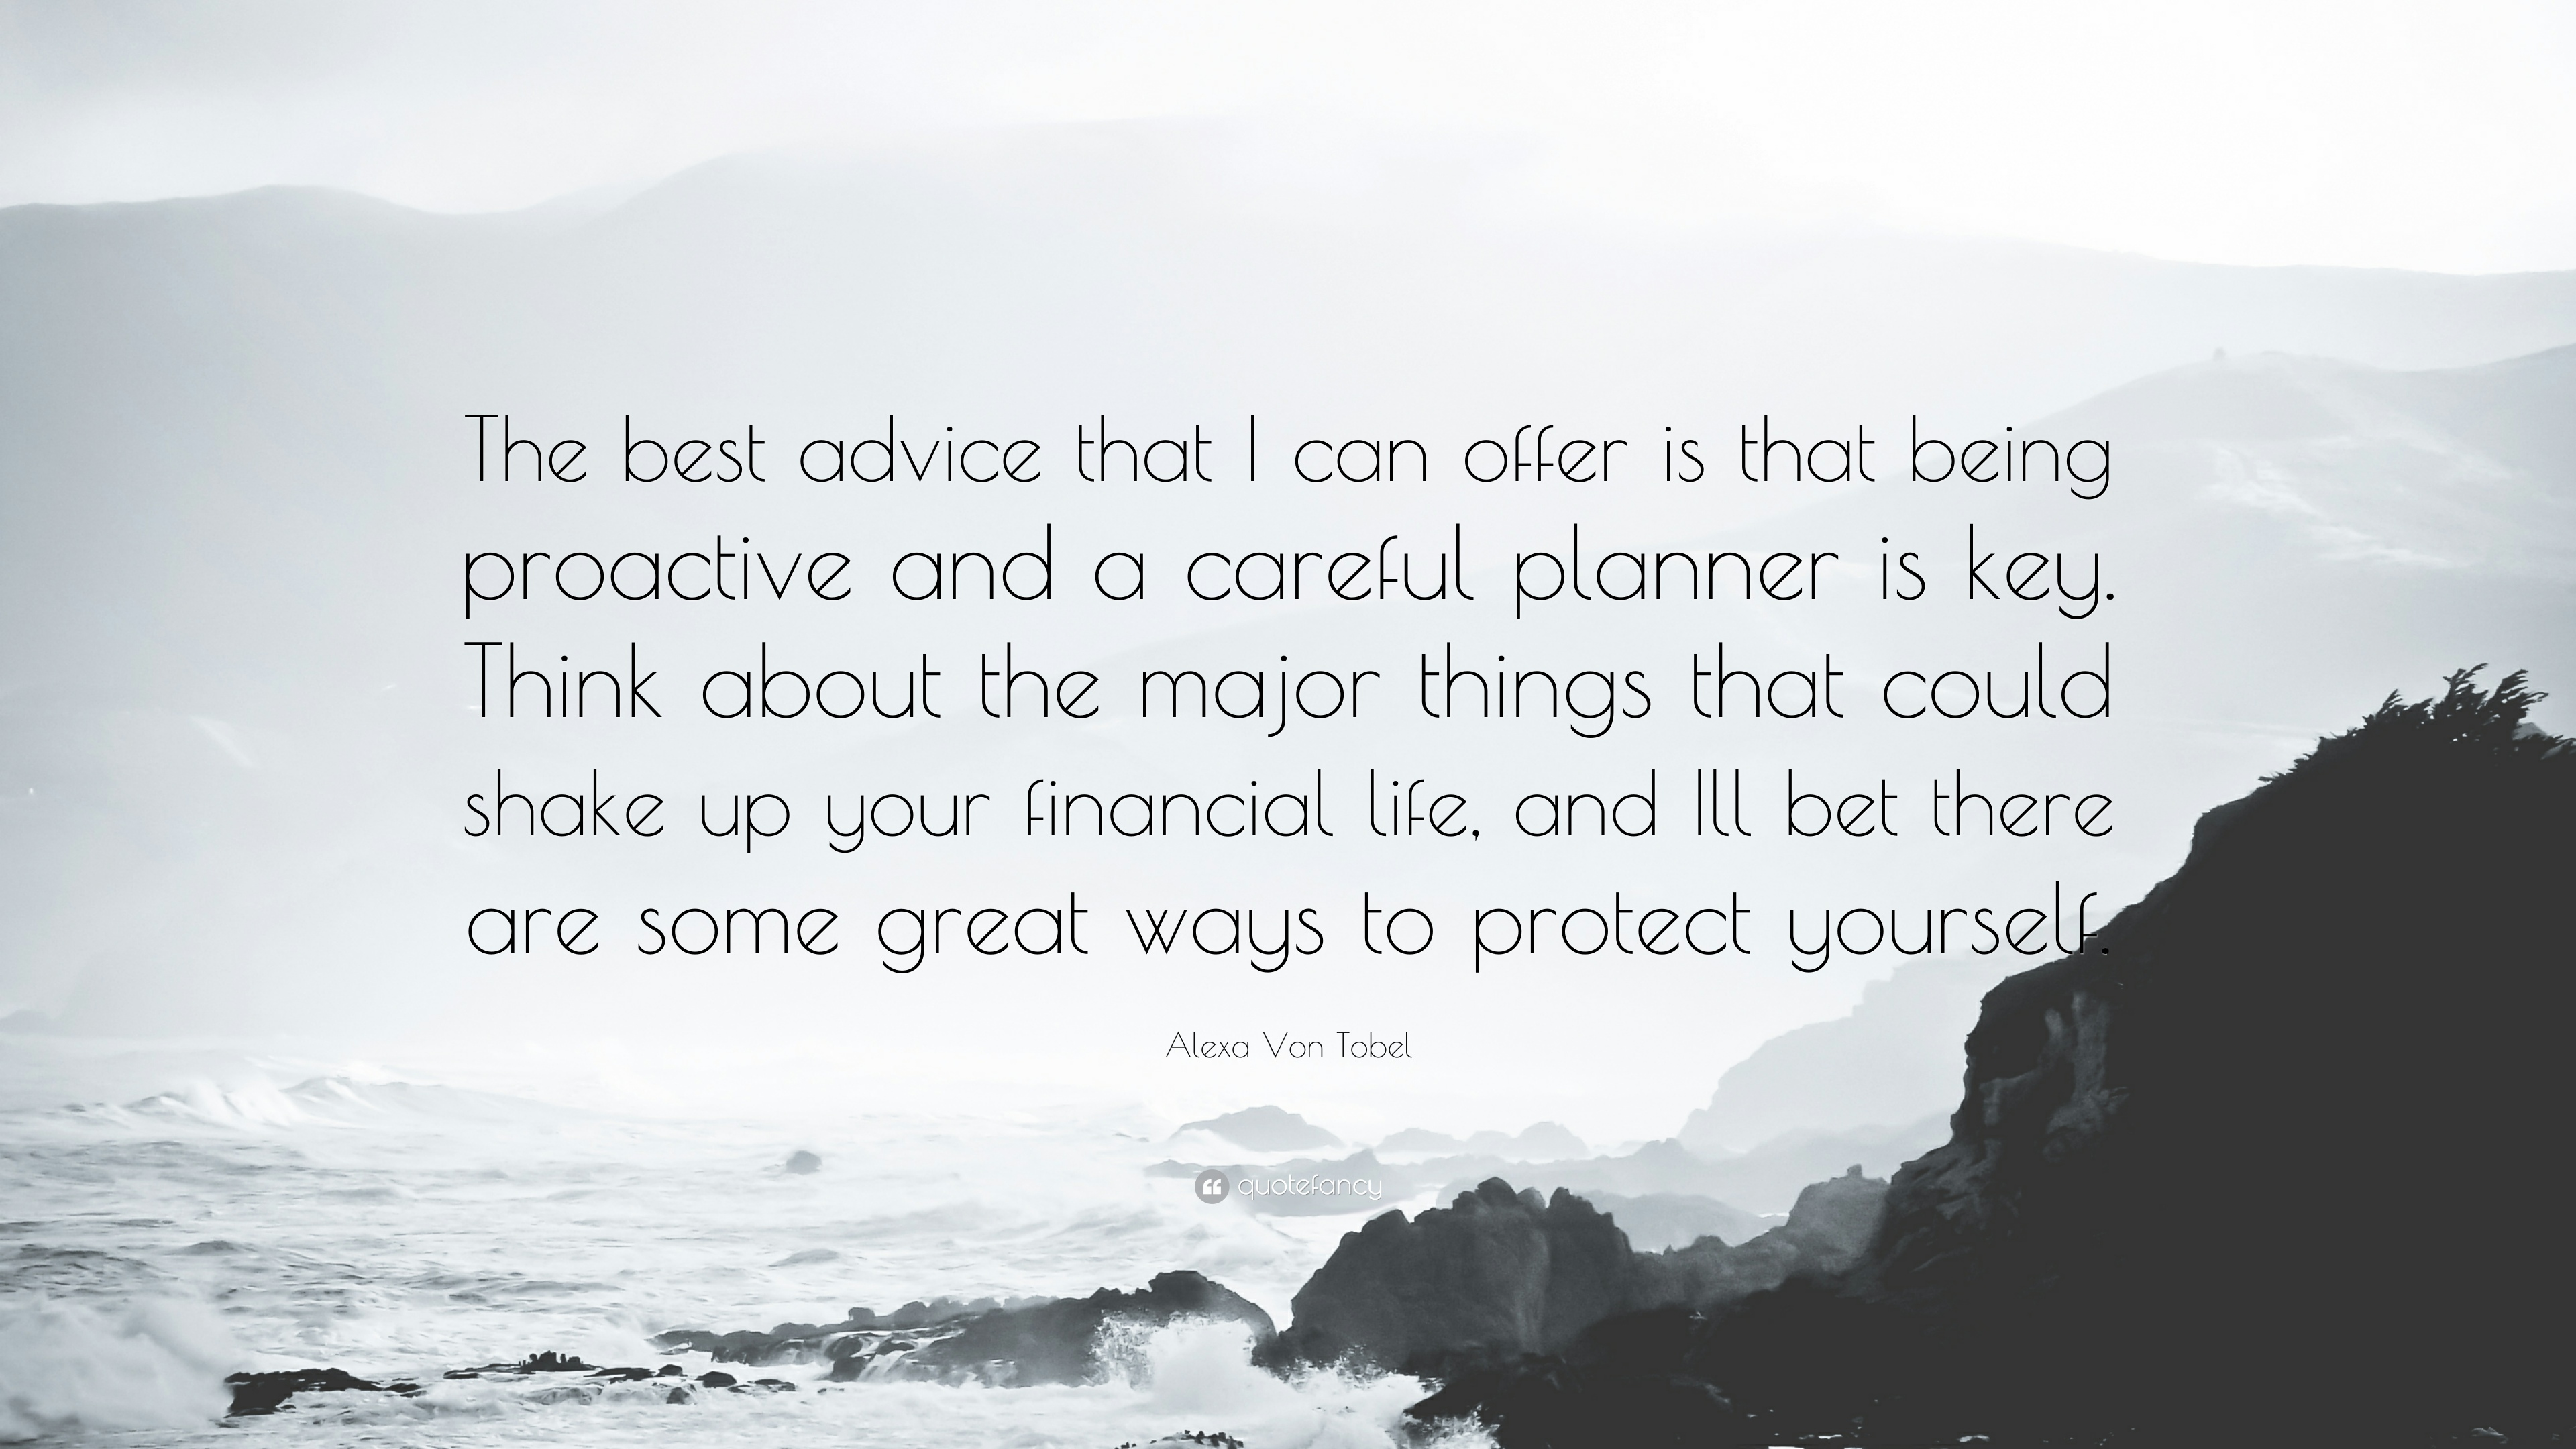 The best advice I can offer in a life of chronic pain